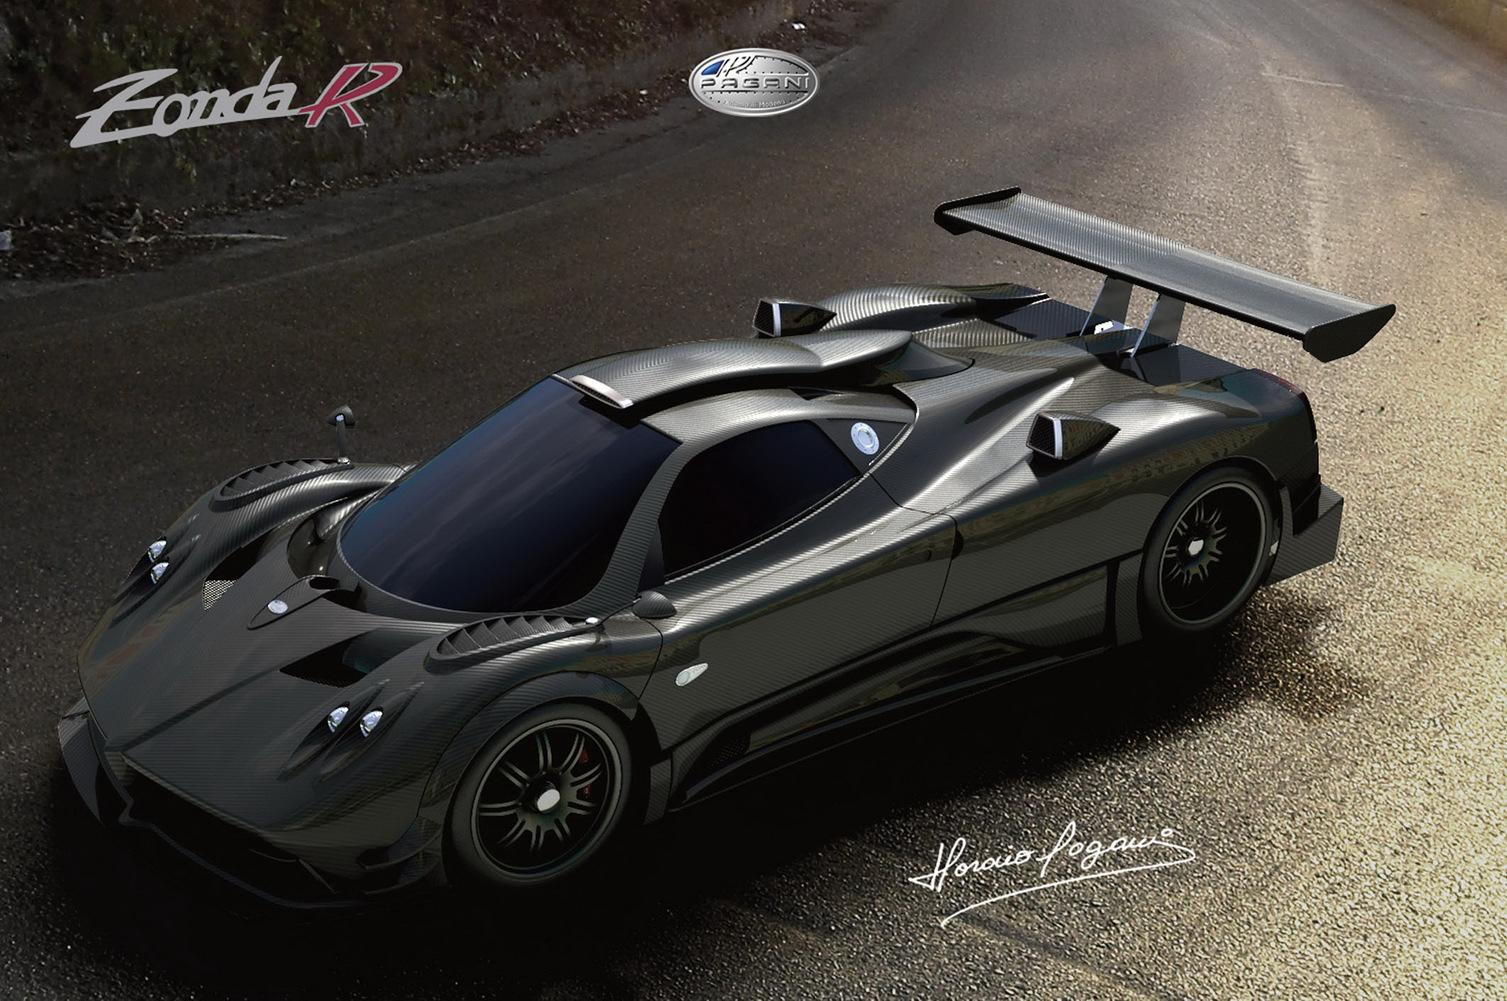 Pagani-car-wallpaper-wp42875-1